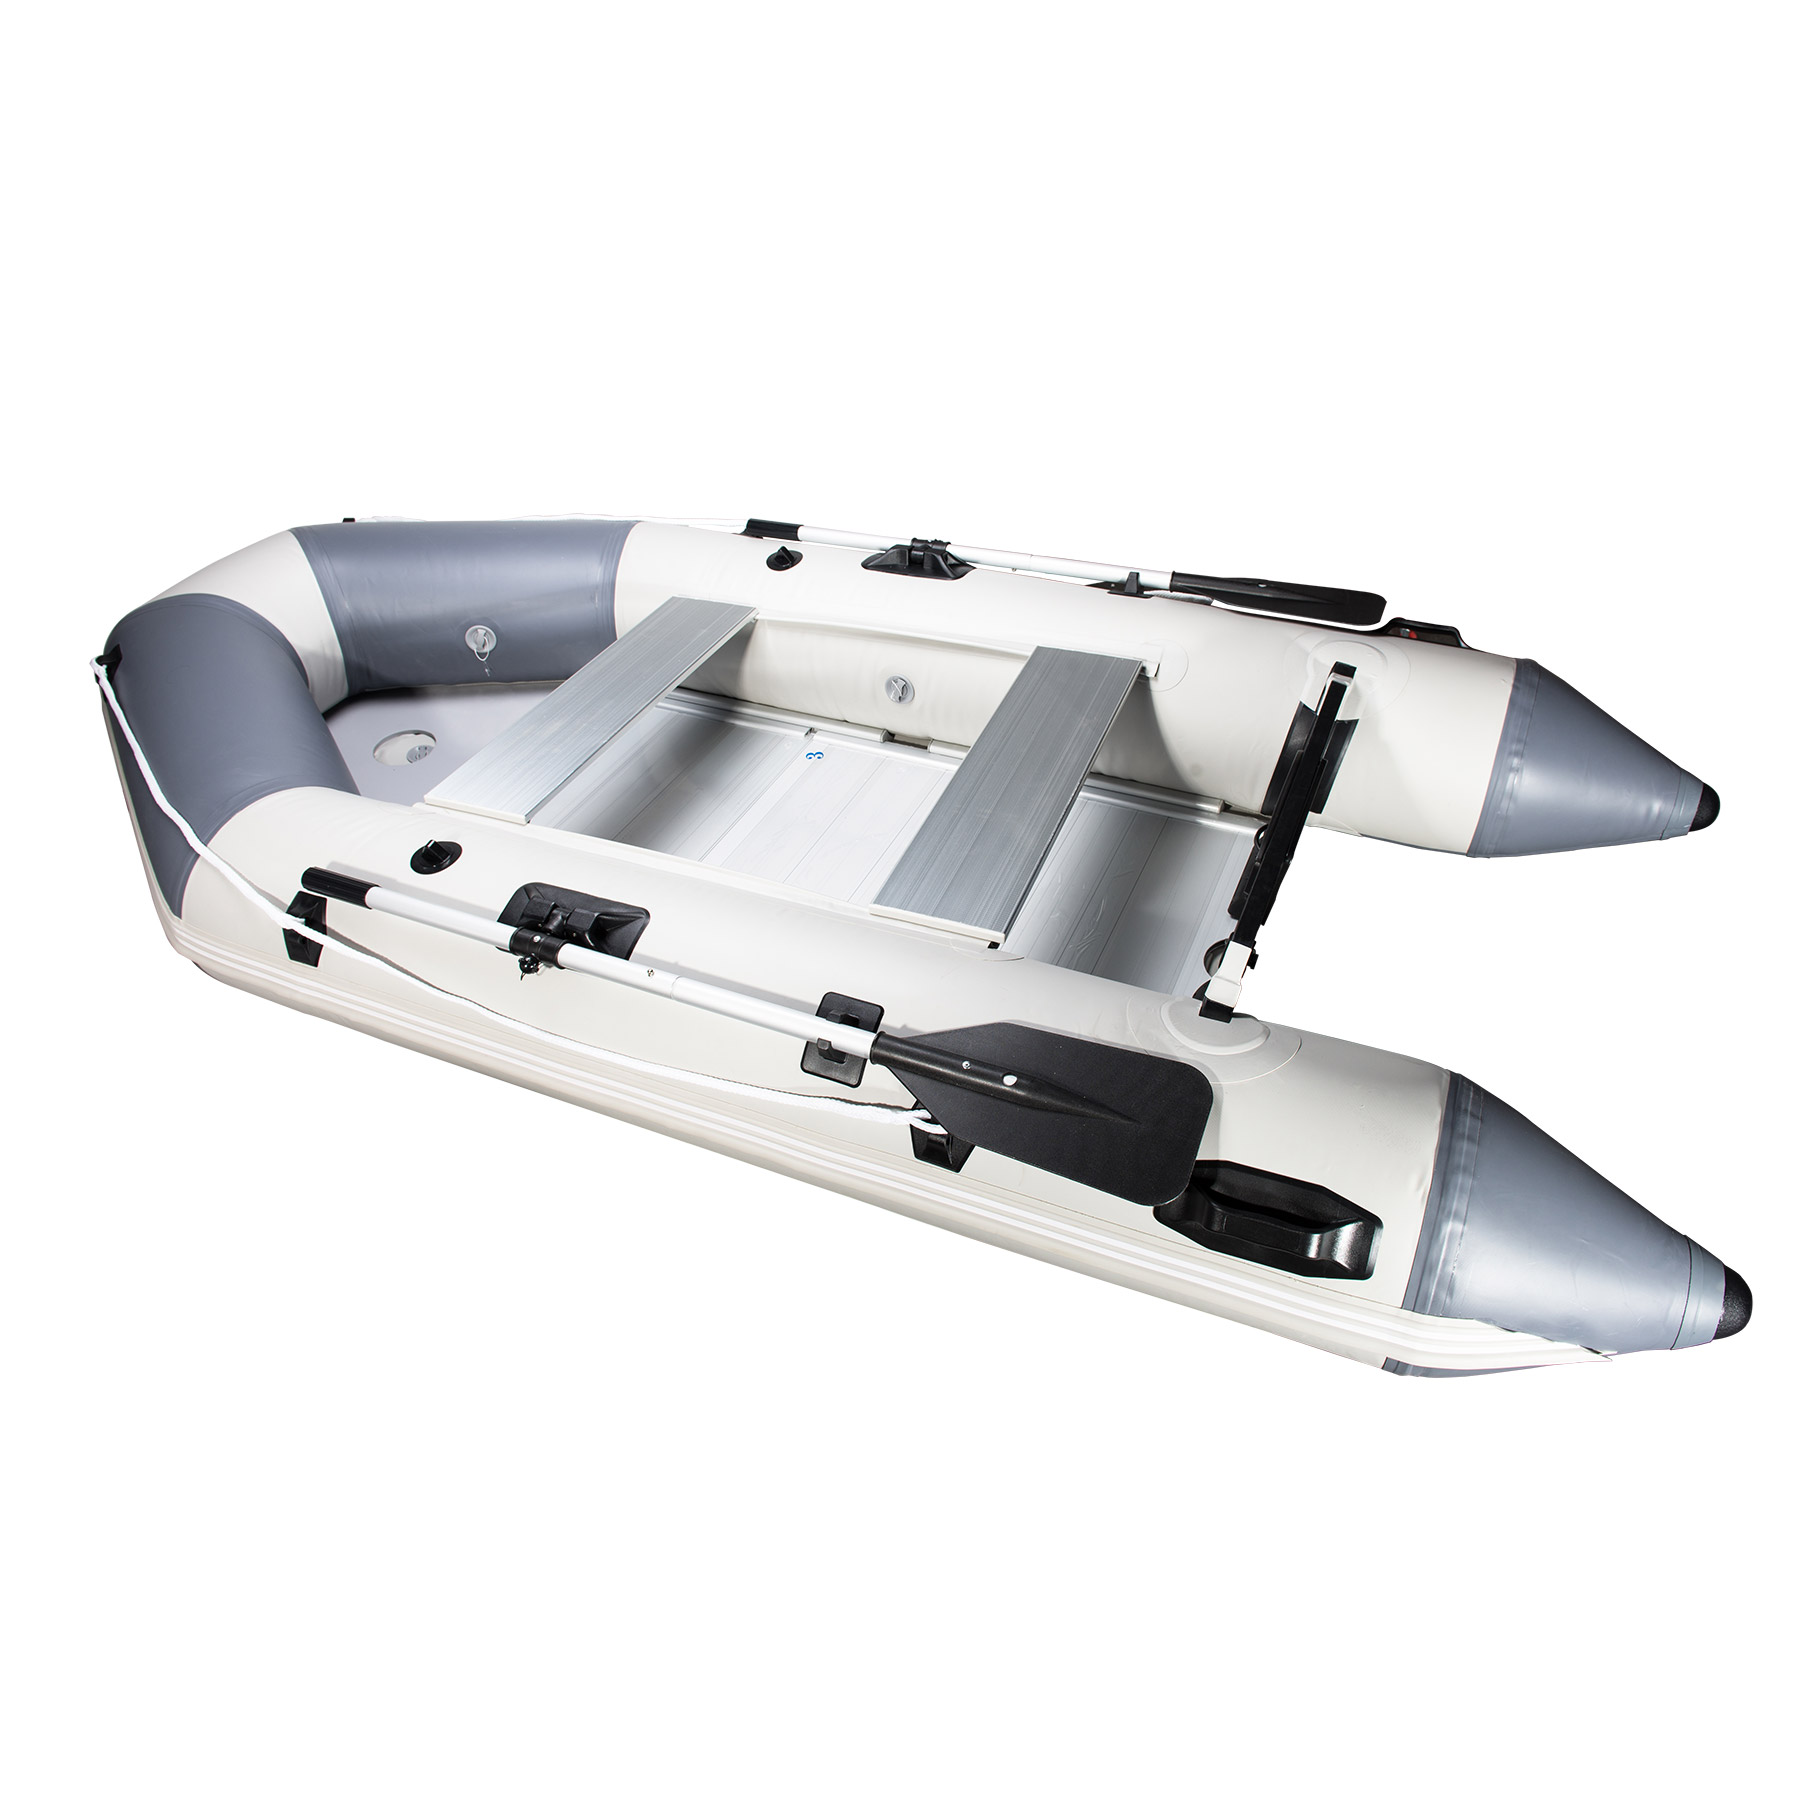 Premium PVC Recreational Fishing Inflatable Boat Dinghy 9.8 Feet Pneumatic Portable Boat